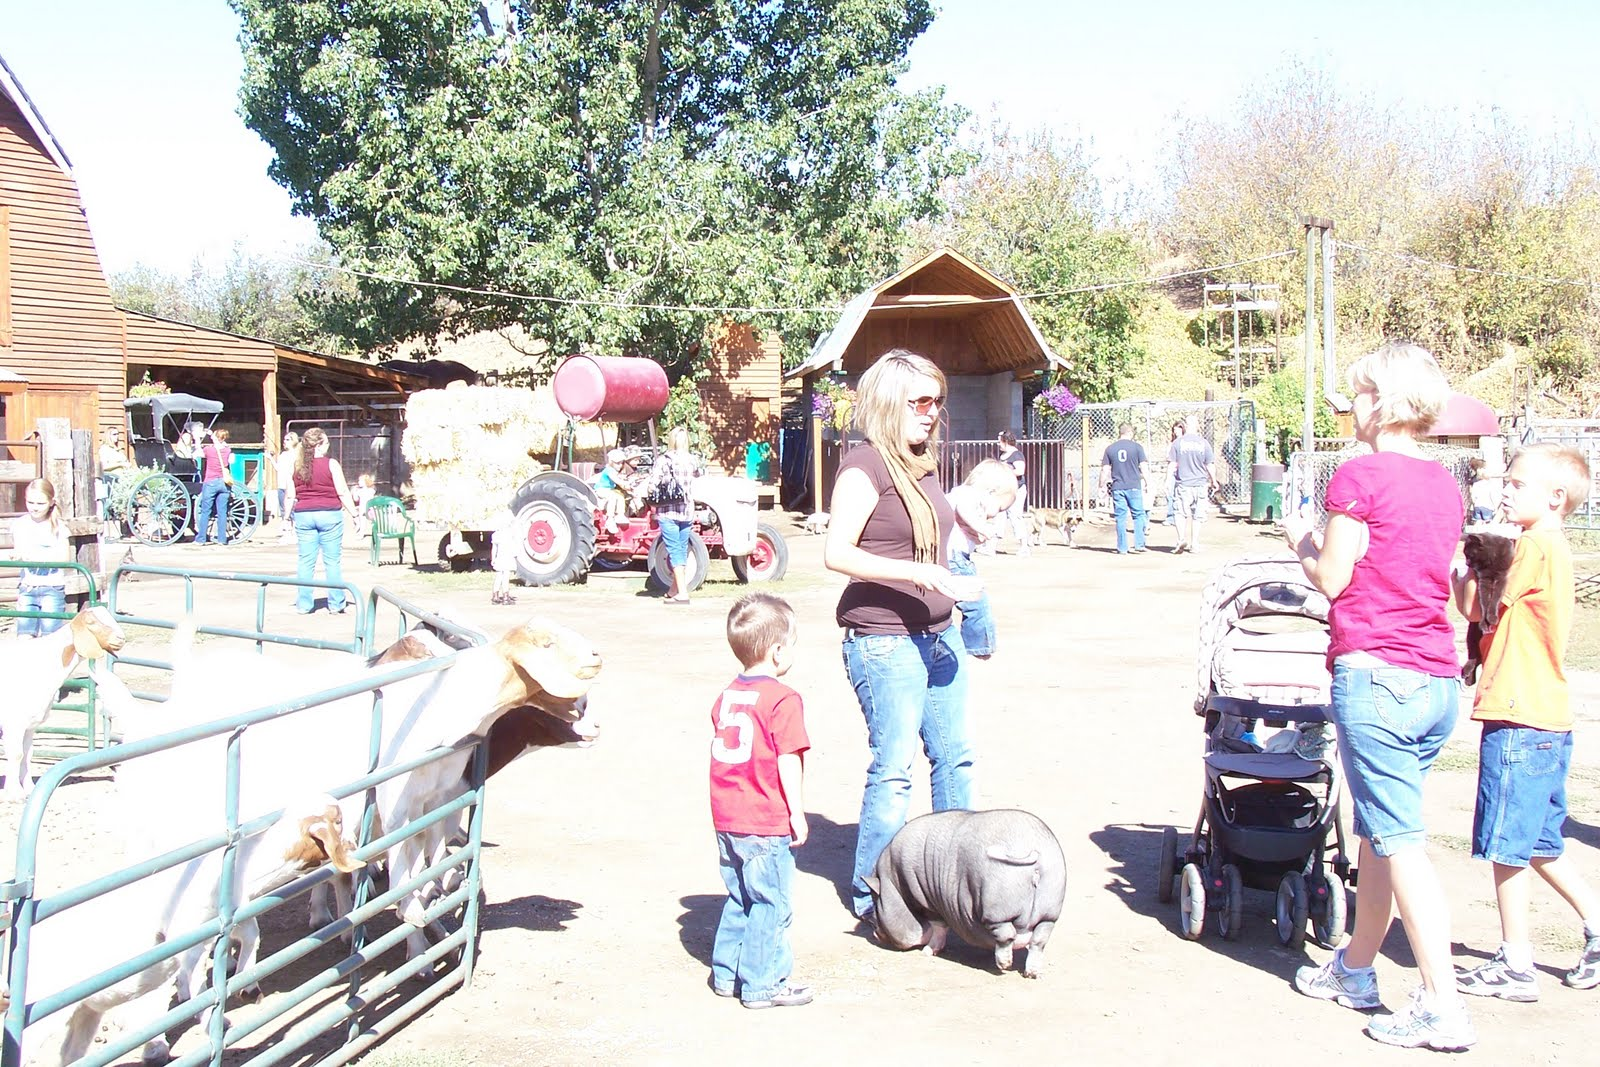 Carver's Cove Petting Farm